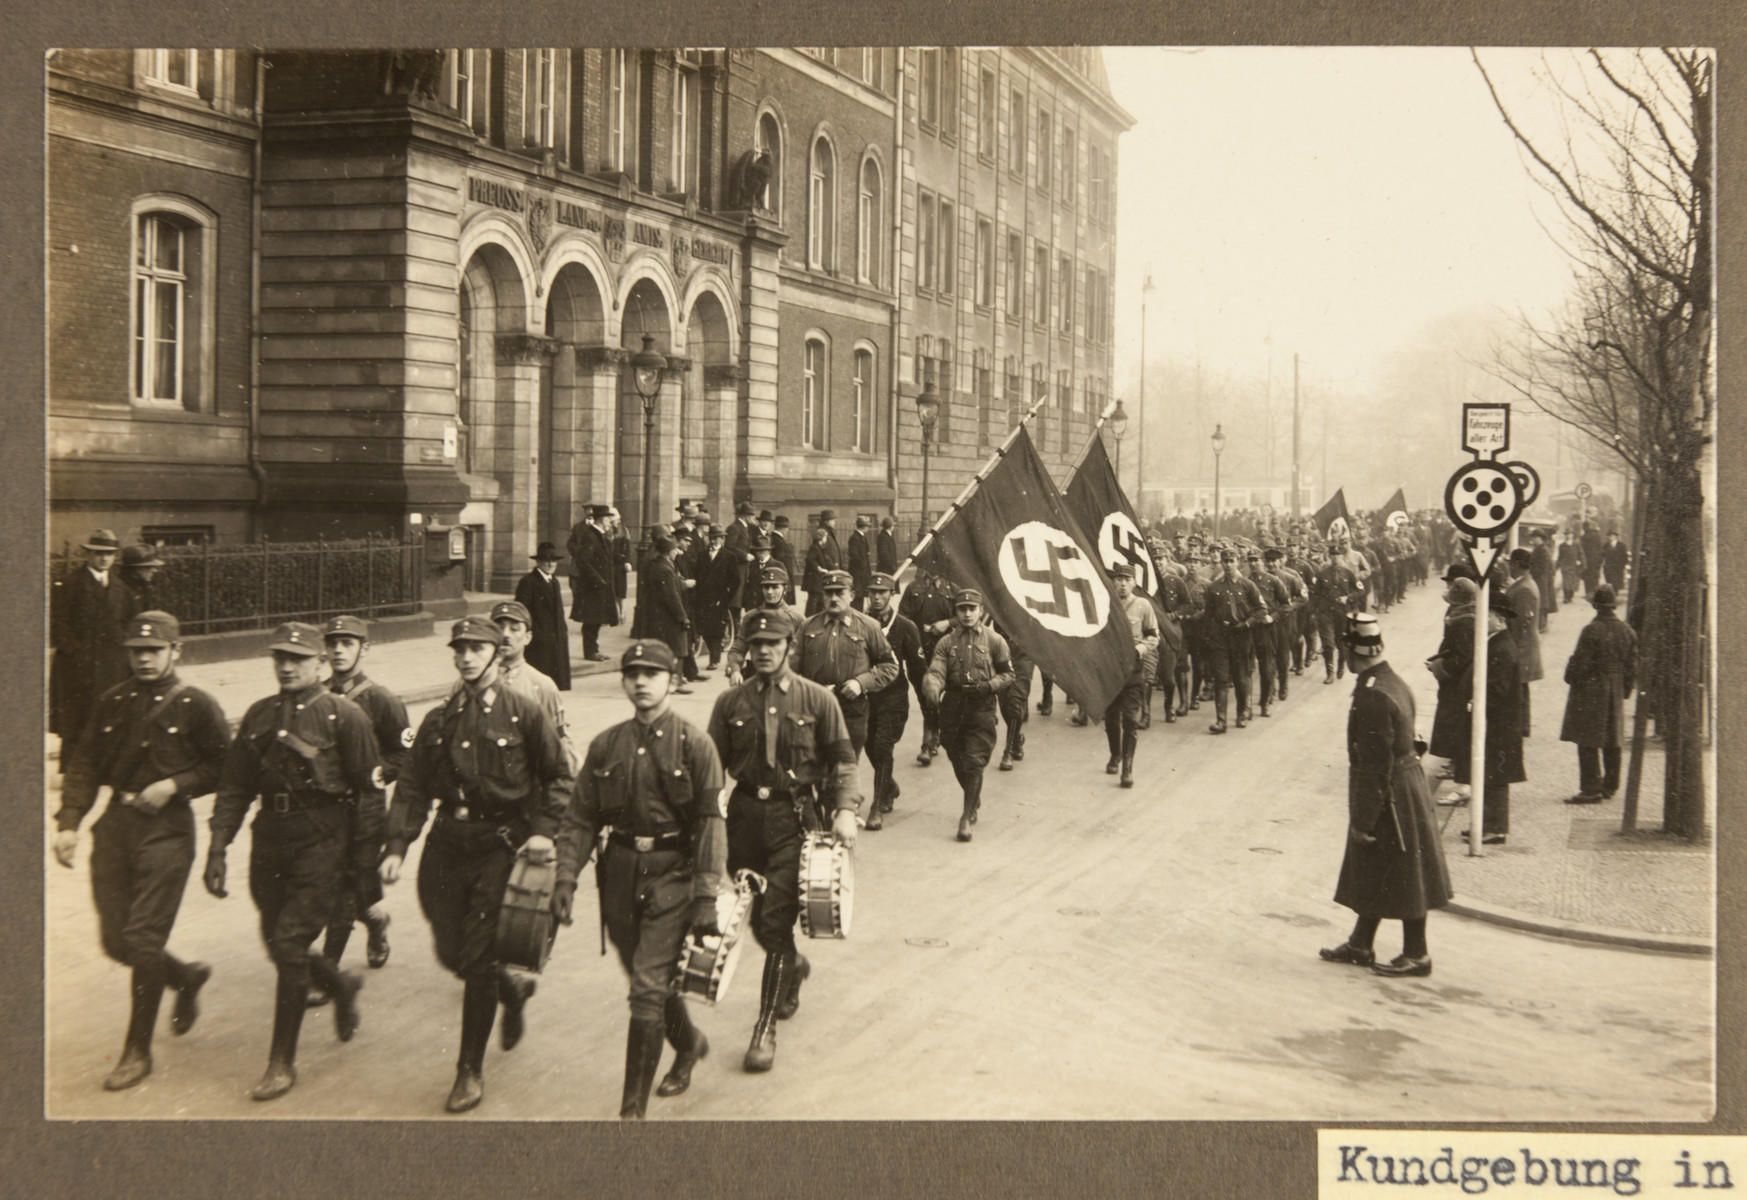 Uniformed SA men parade down a city street in Duisburg during a Nazi rally.